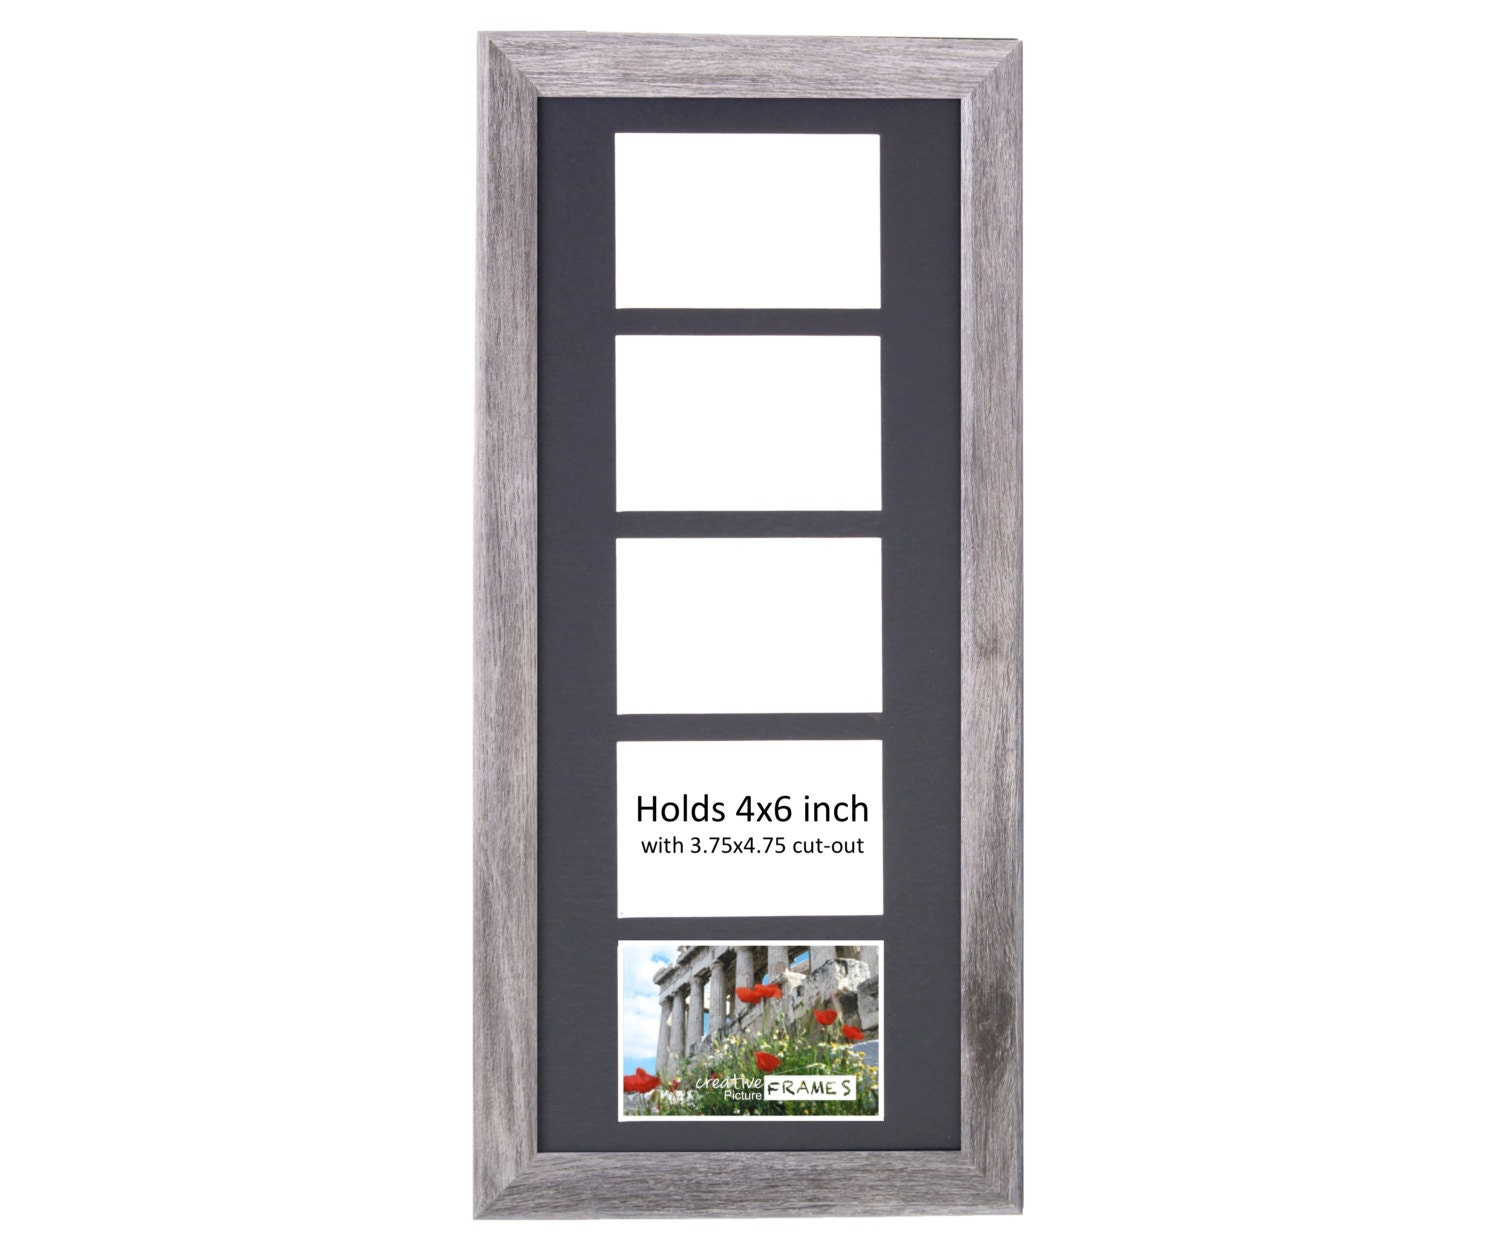 Driftwood Picture Frame 2 3 4 5 6 7 8 9 10 Opening Glass